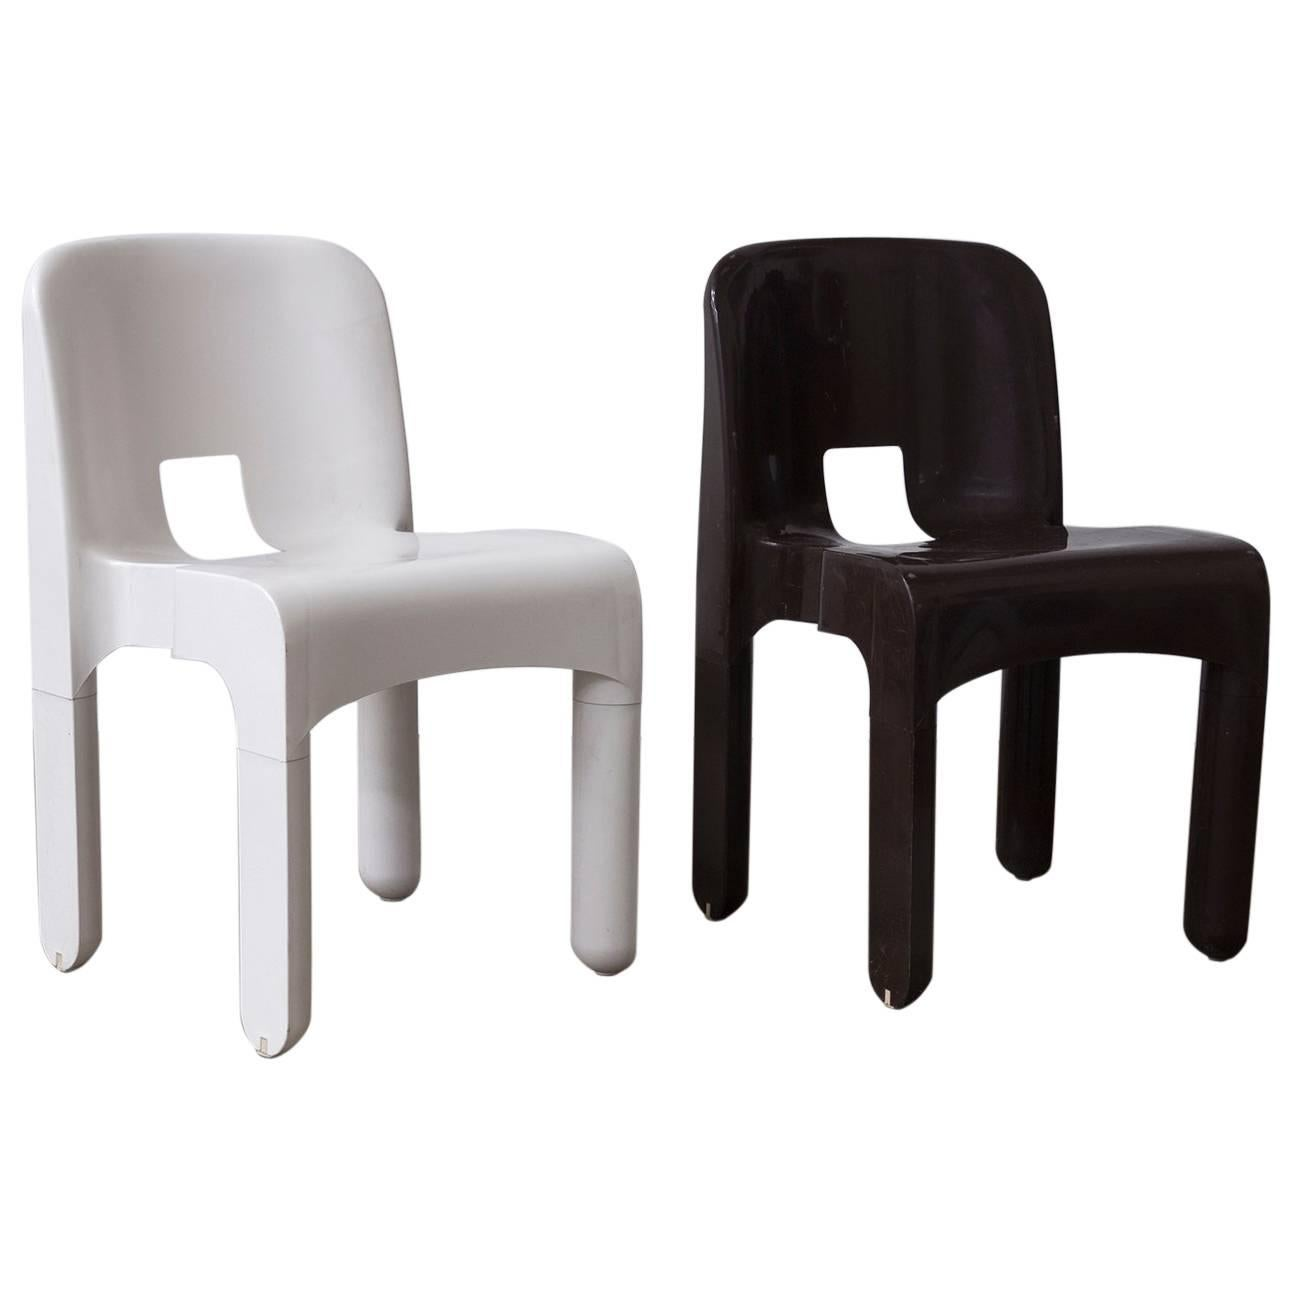 1967 Joe Colombo, Universale Plastic Chair, Type 4867 In Chocolate Brown U0026  White For